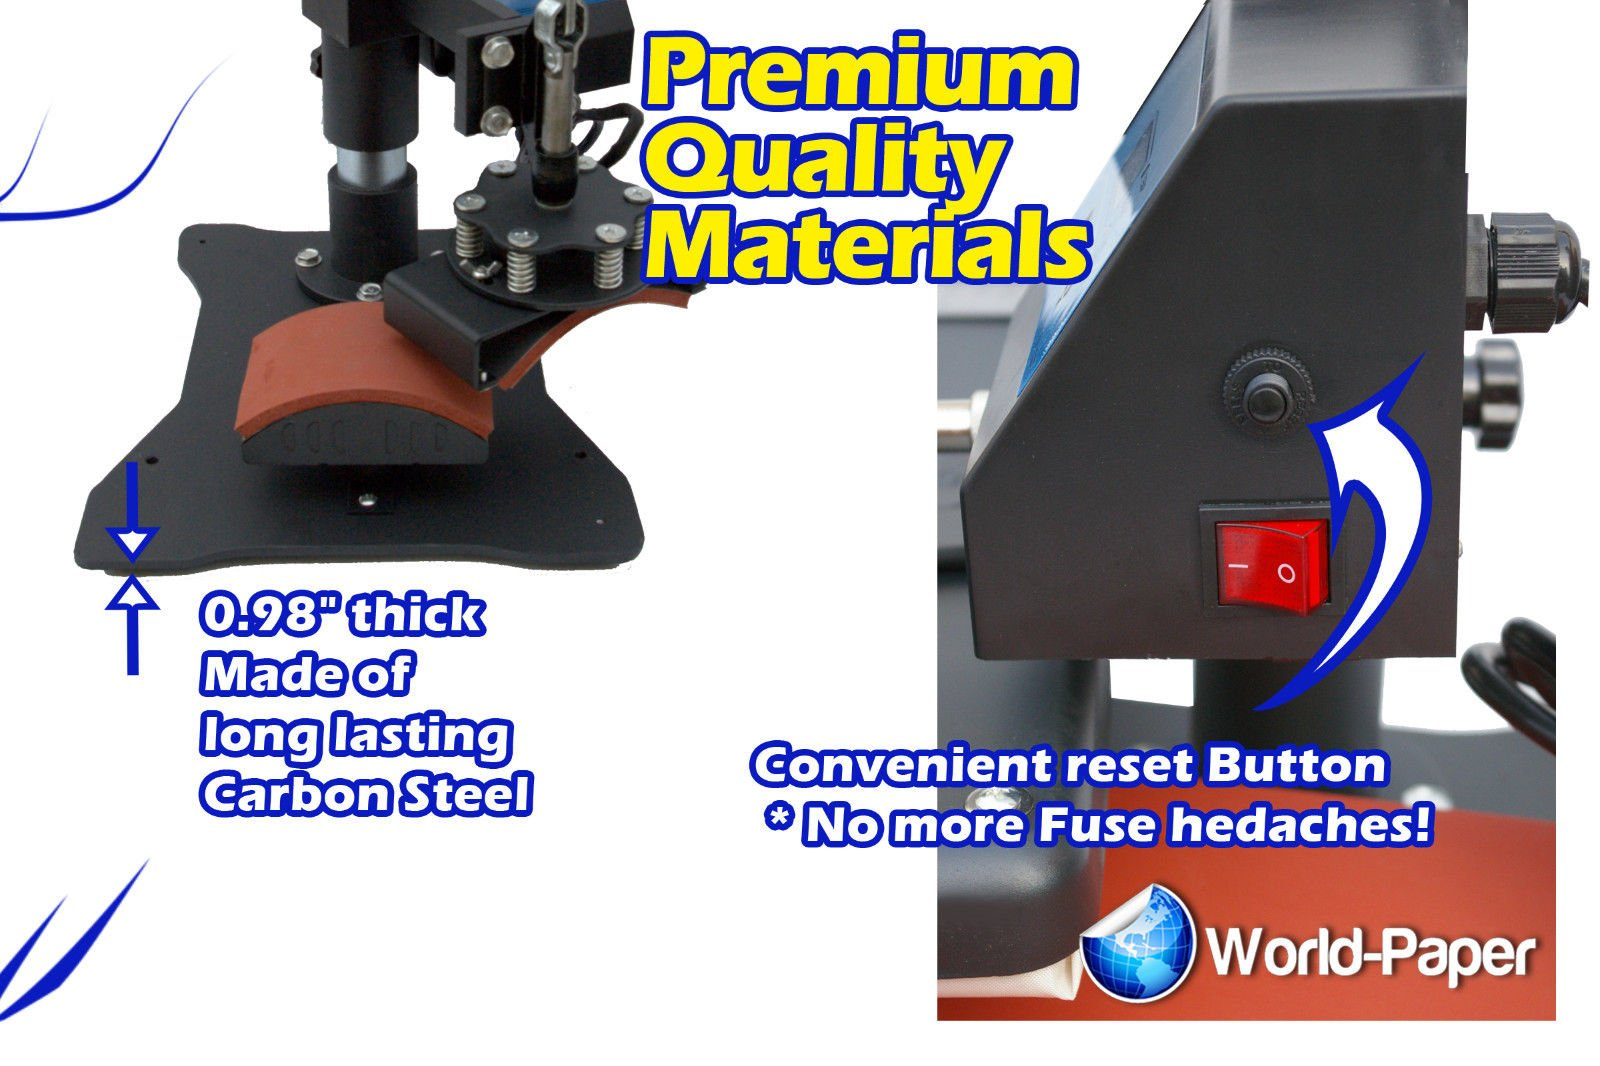 8 in 1 Heat Press Machine for t shirts machine combo kit swing away sublimation by Calor Press